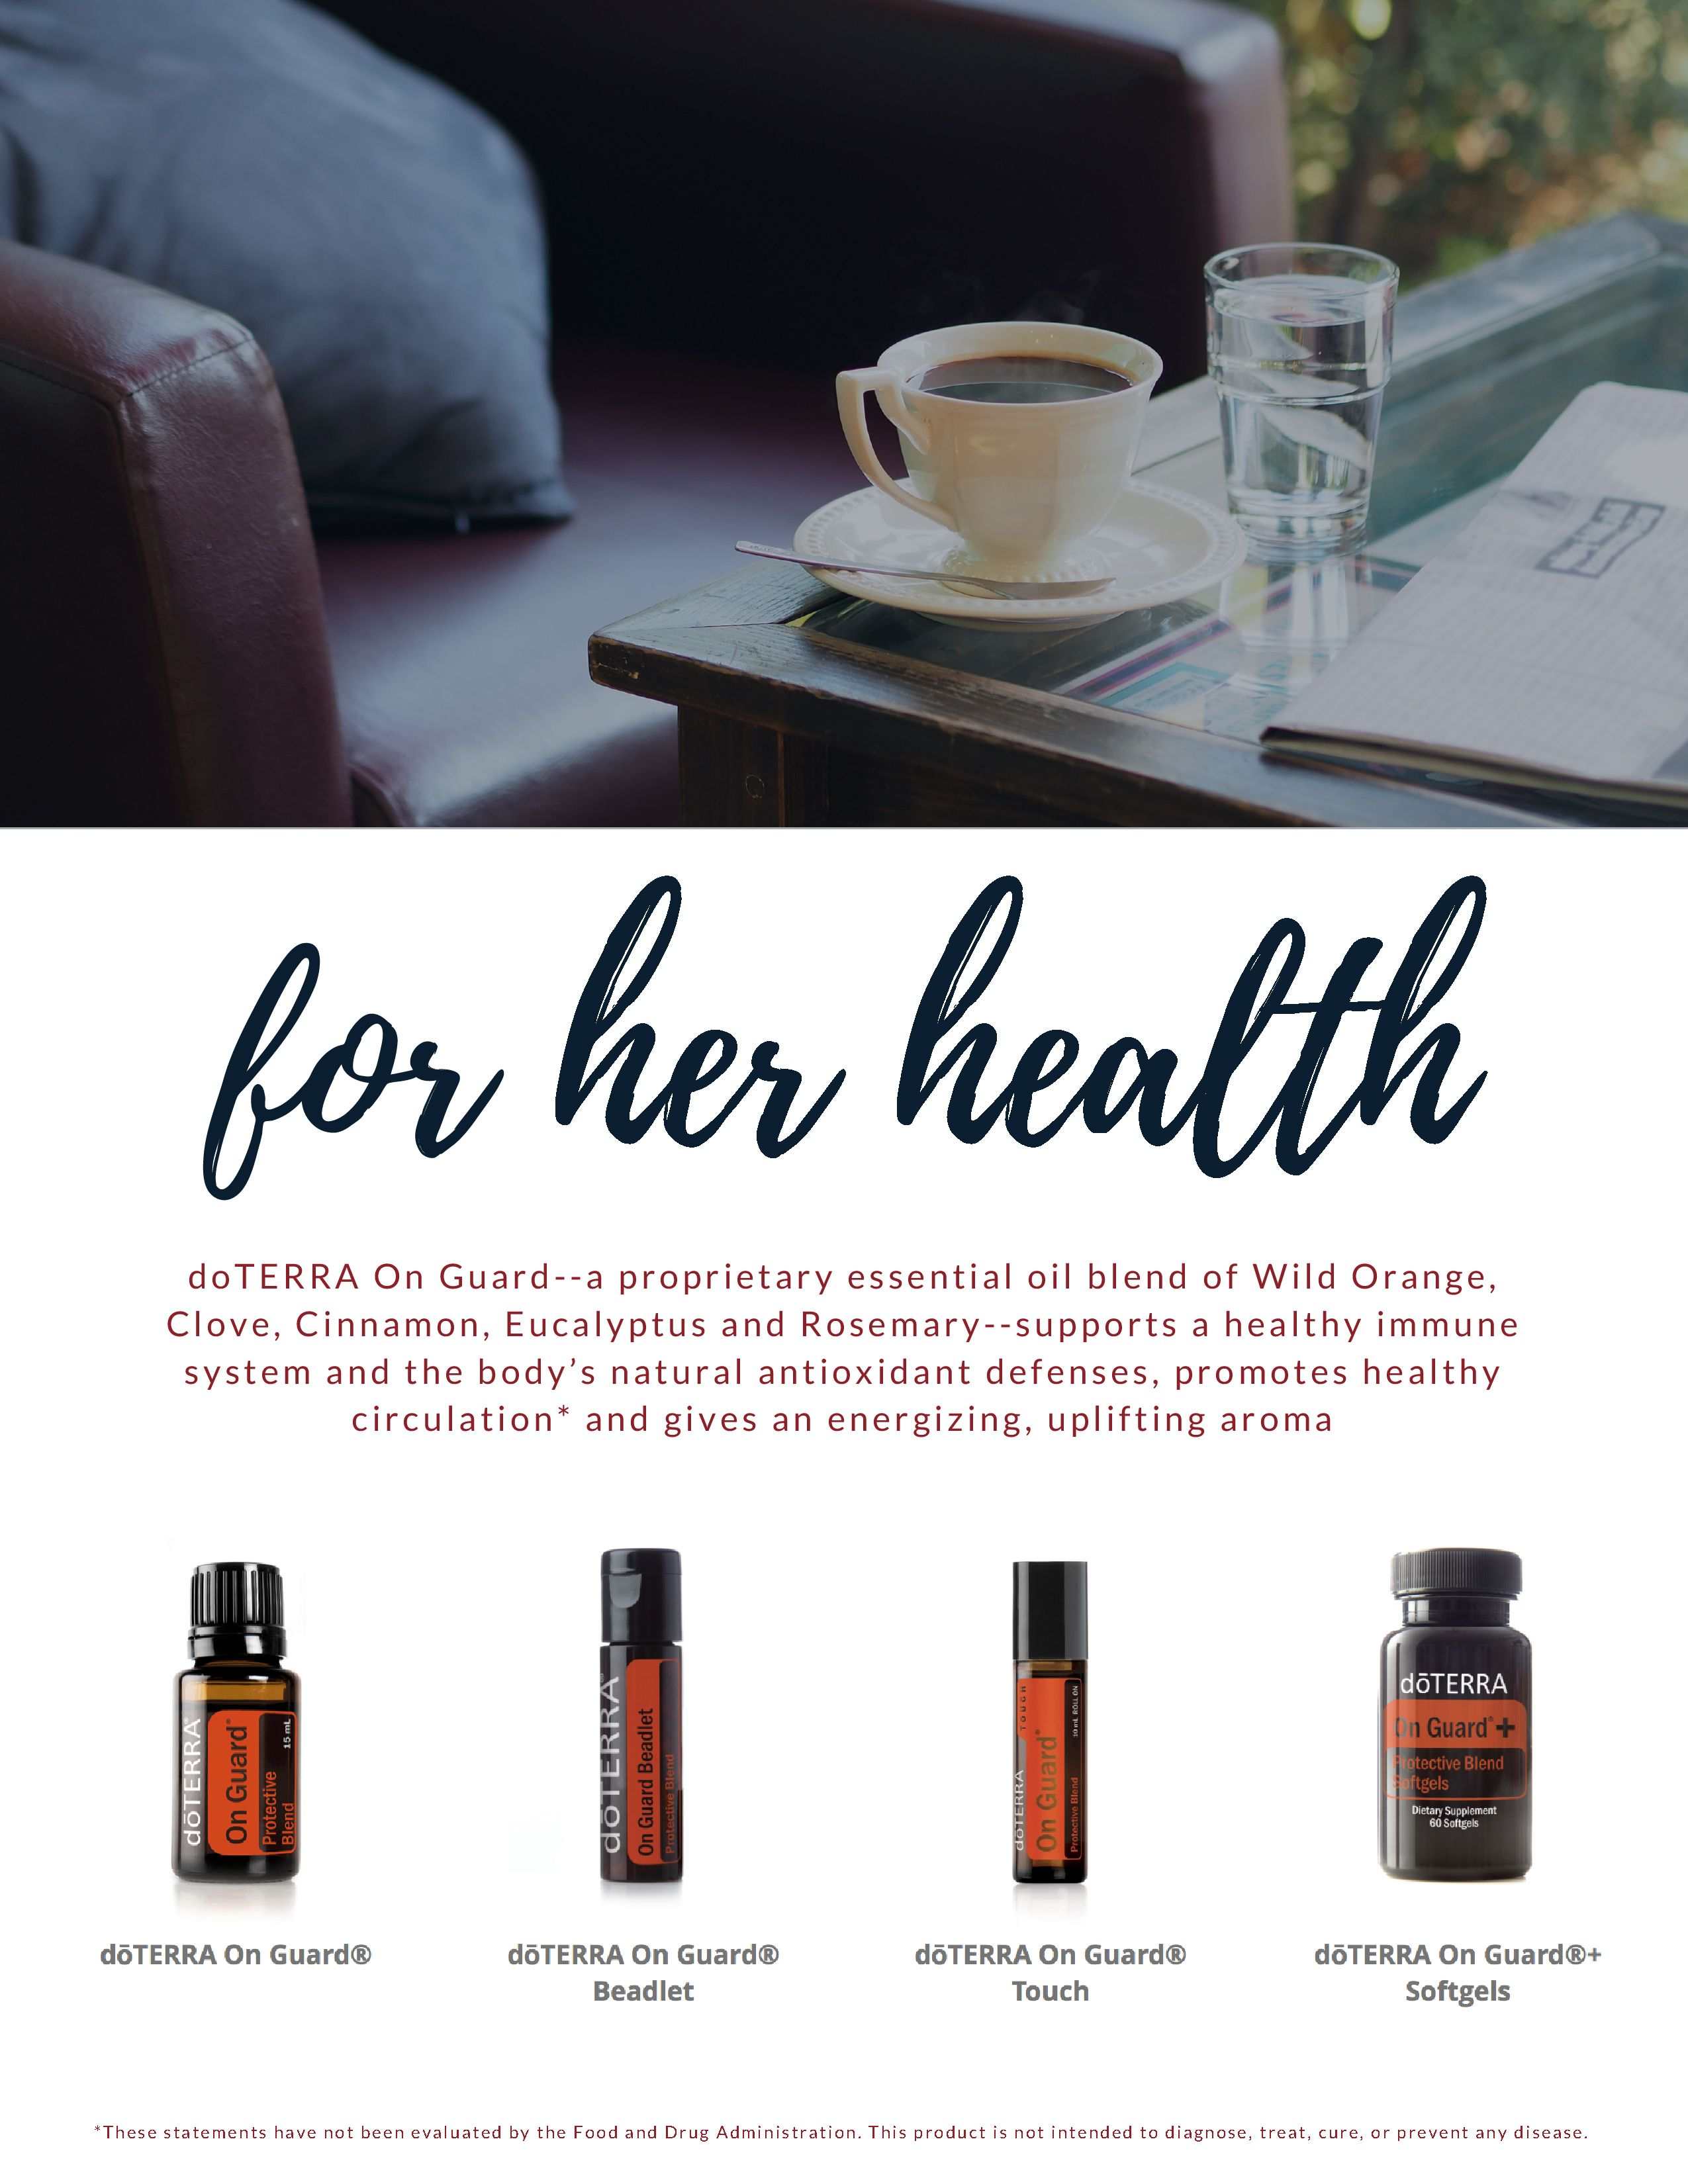 DoTERRA On Guard has a special blend of essential oils to promote health